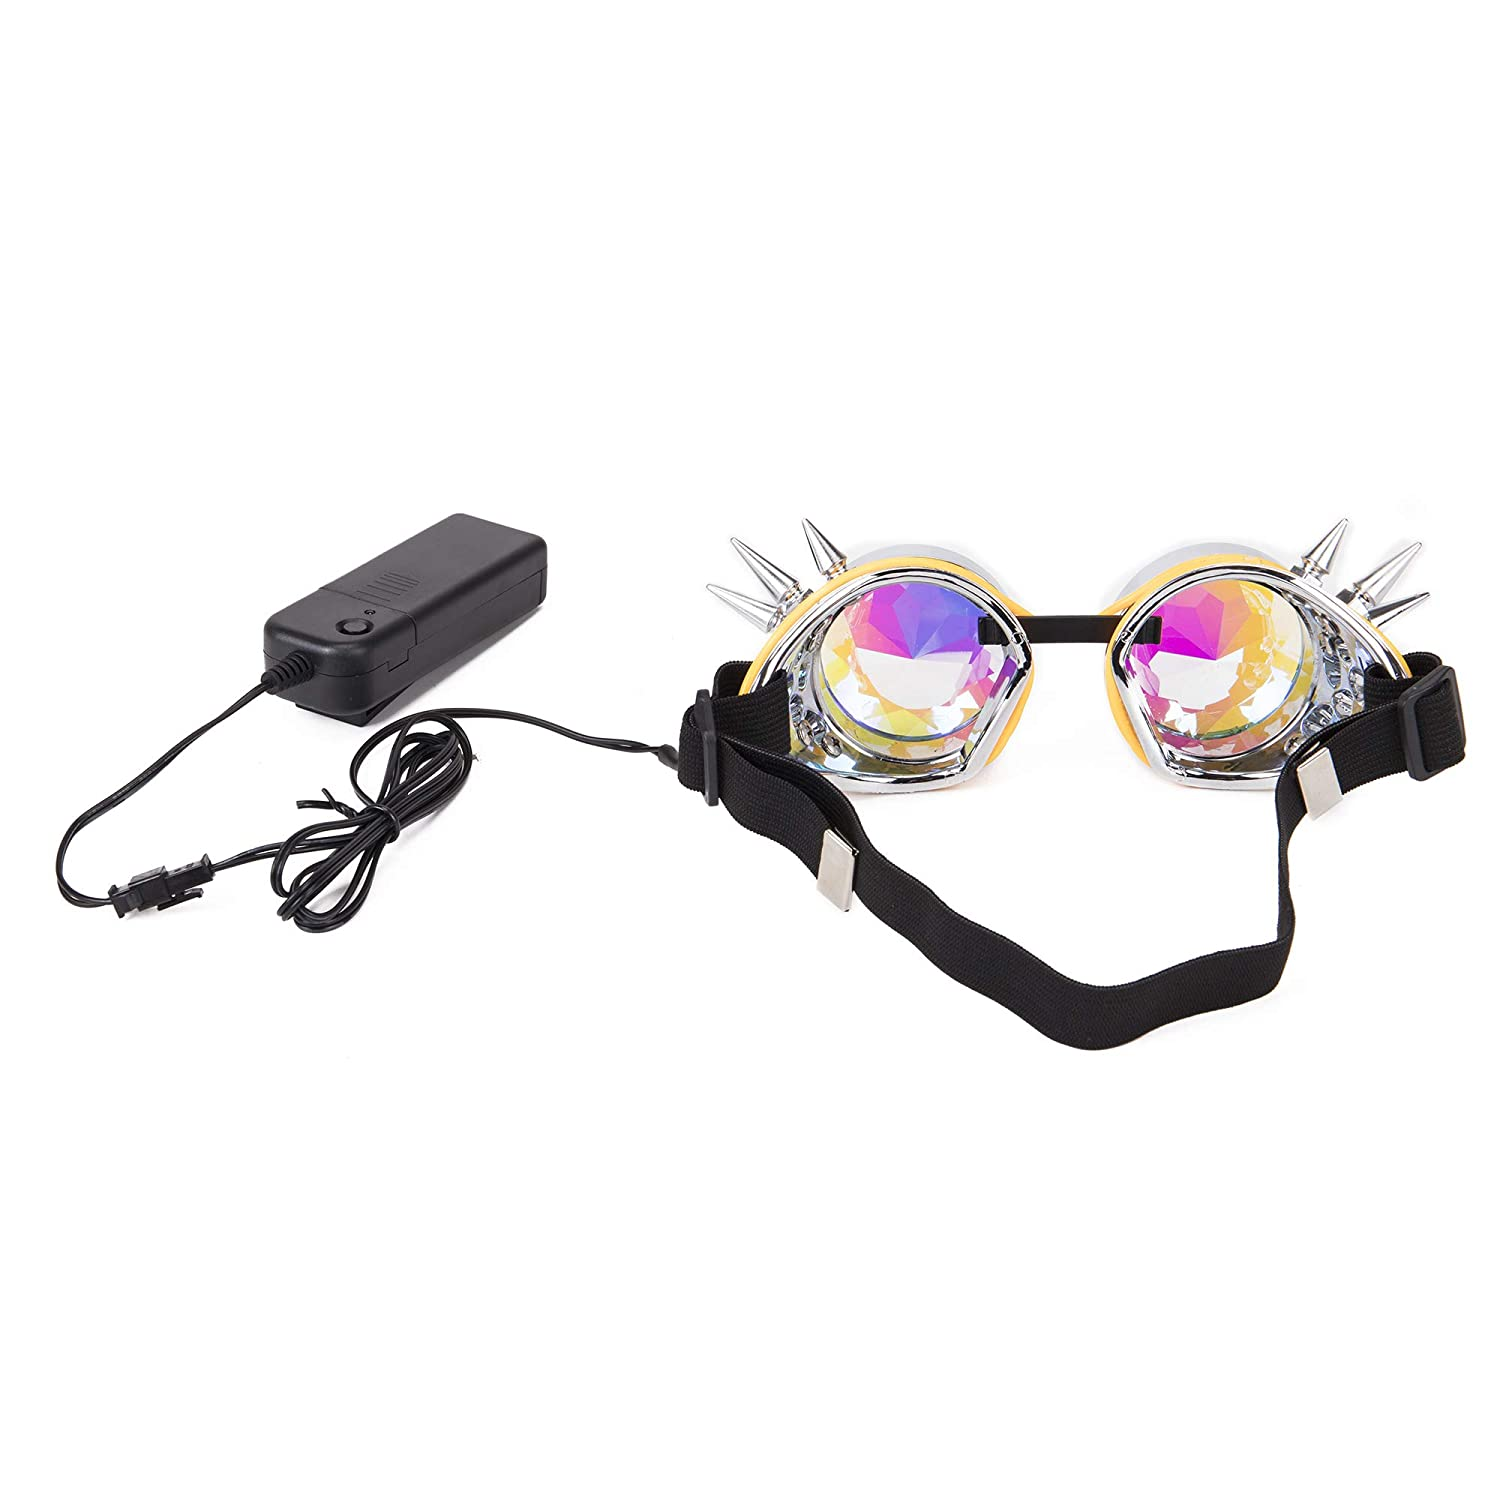 659a185c9384 FOCUSSEXY Kaleidoscope Glasses Rave Crystal Prism Steampunk Goggle Fashion  FS MG041B-CN-WLJ01